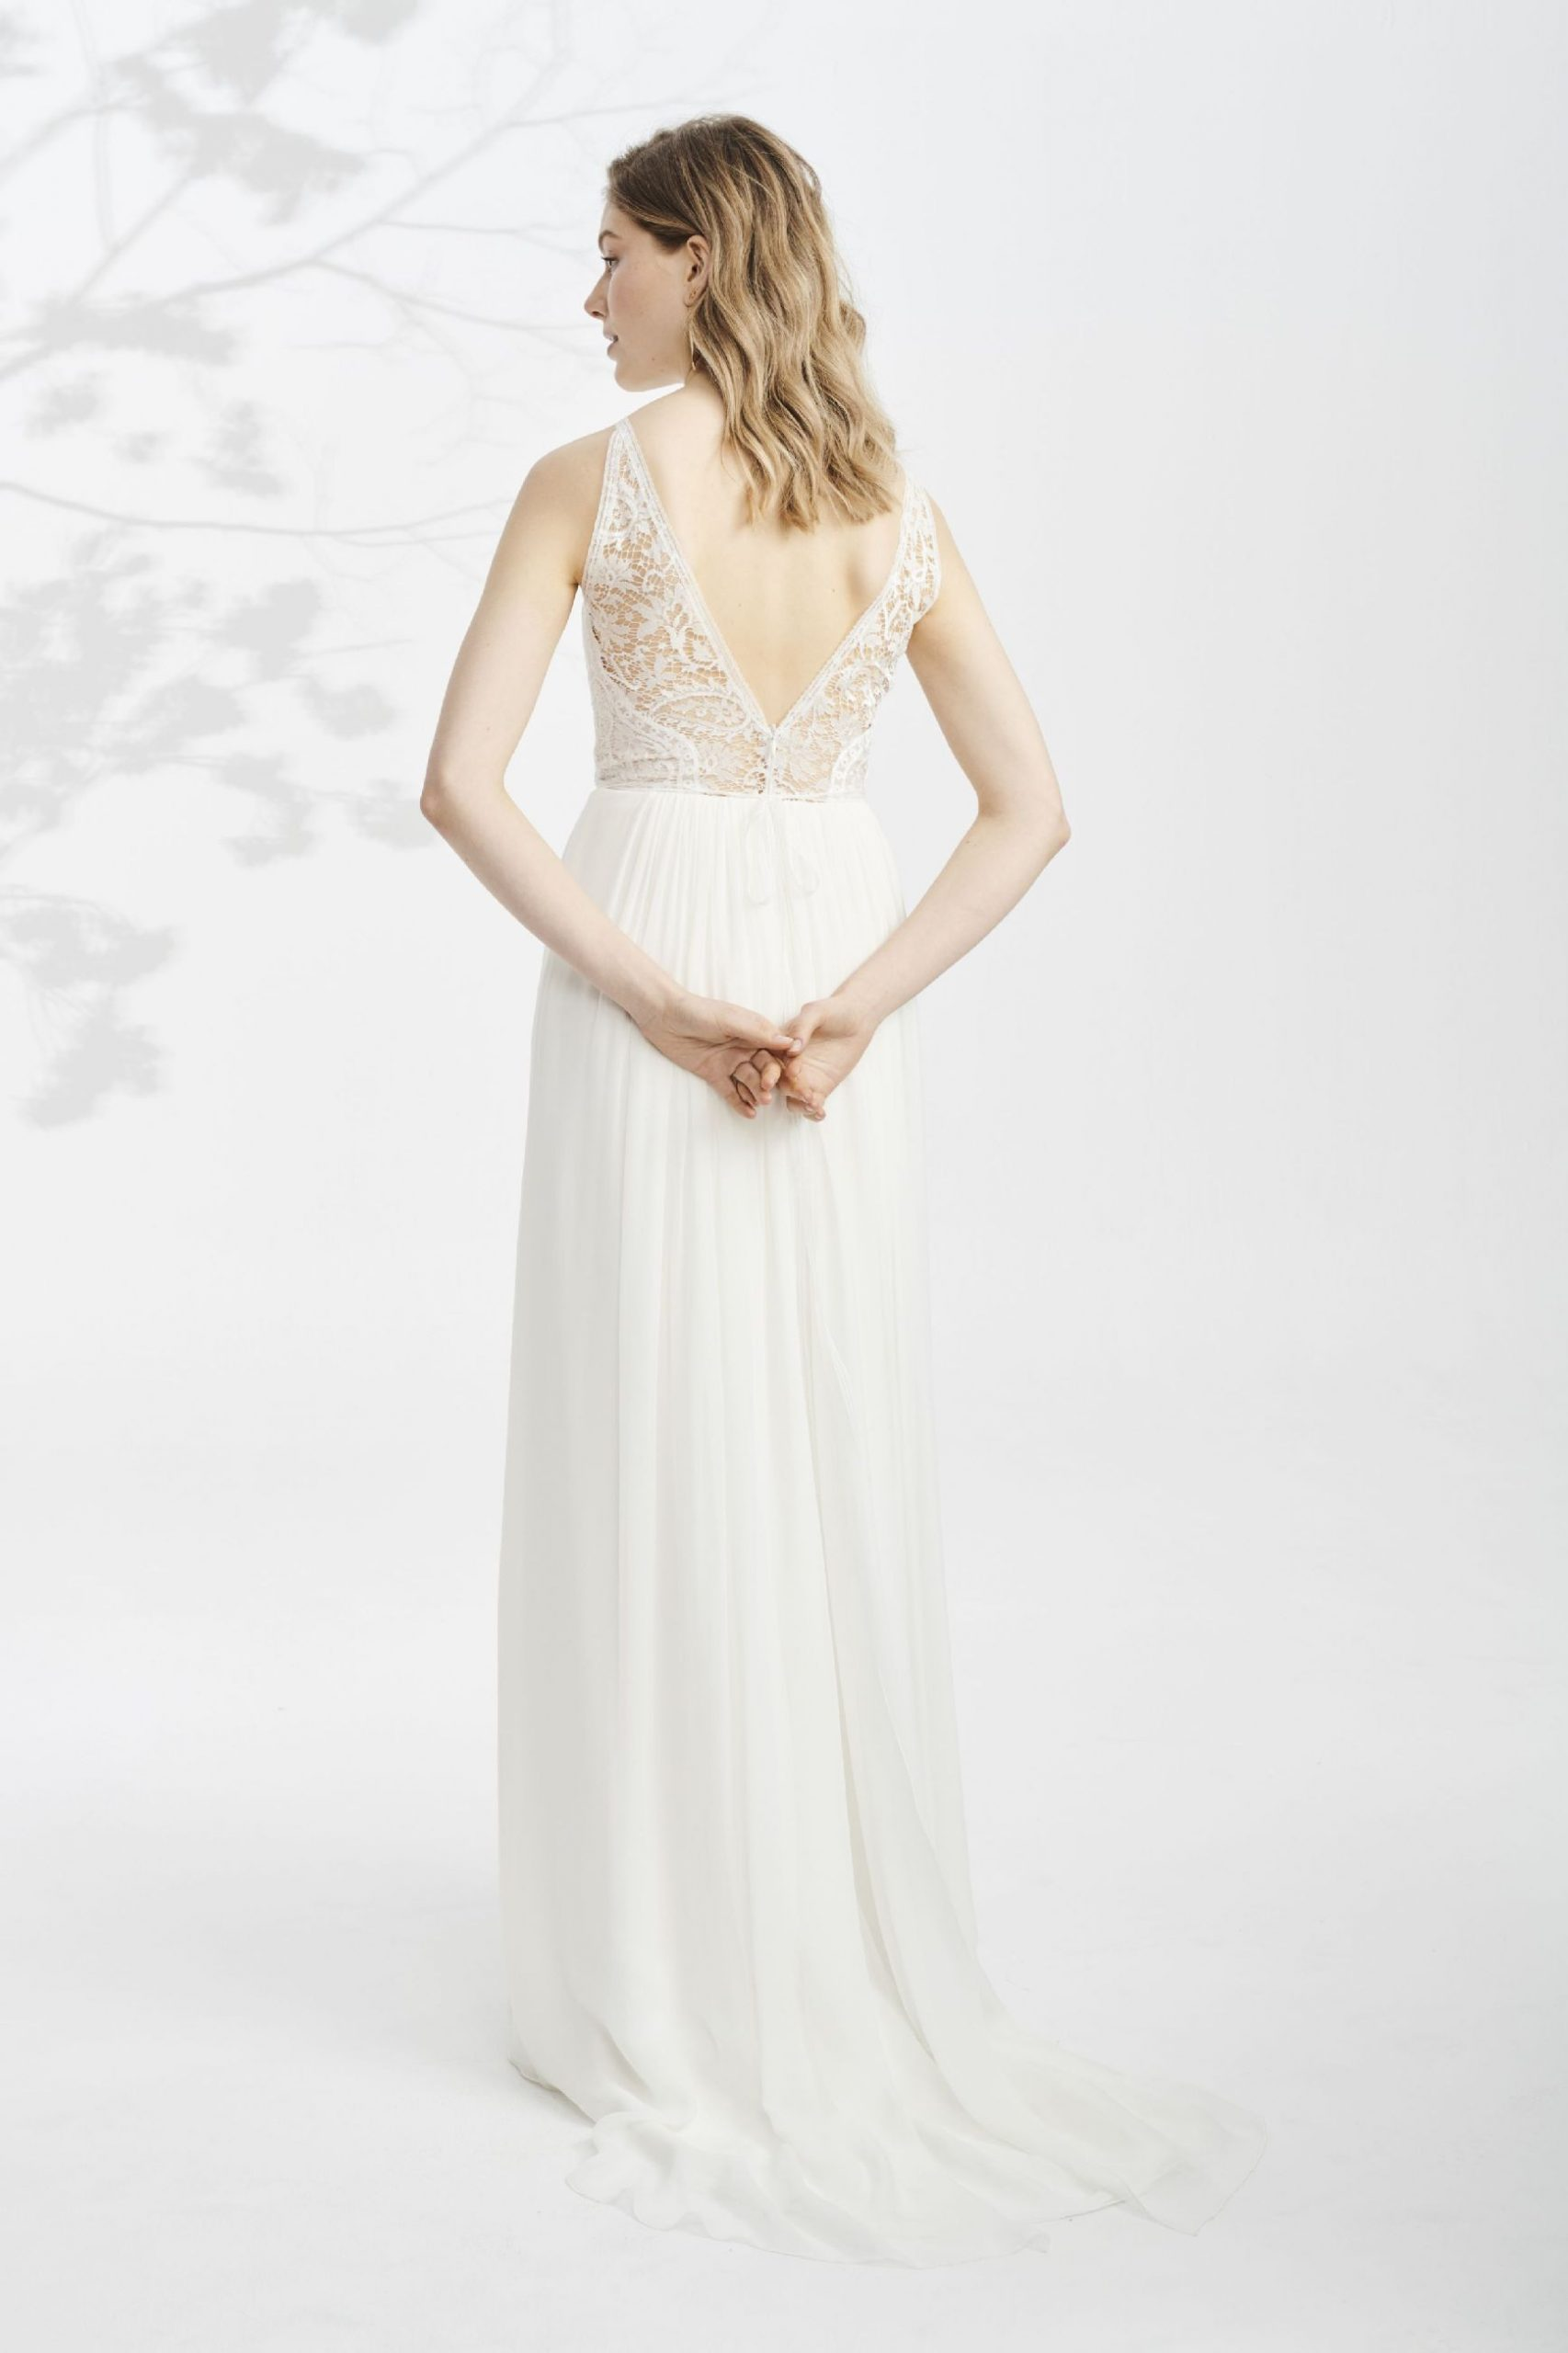 Weddingdress Maiga ♥ Fluent Weddinggown In With A Beautiful